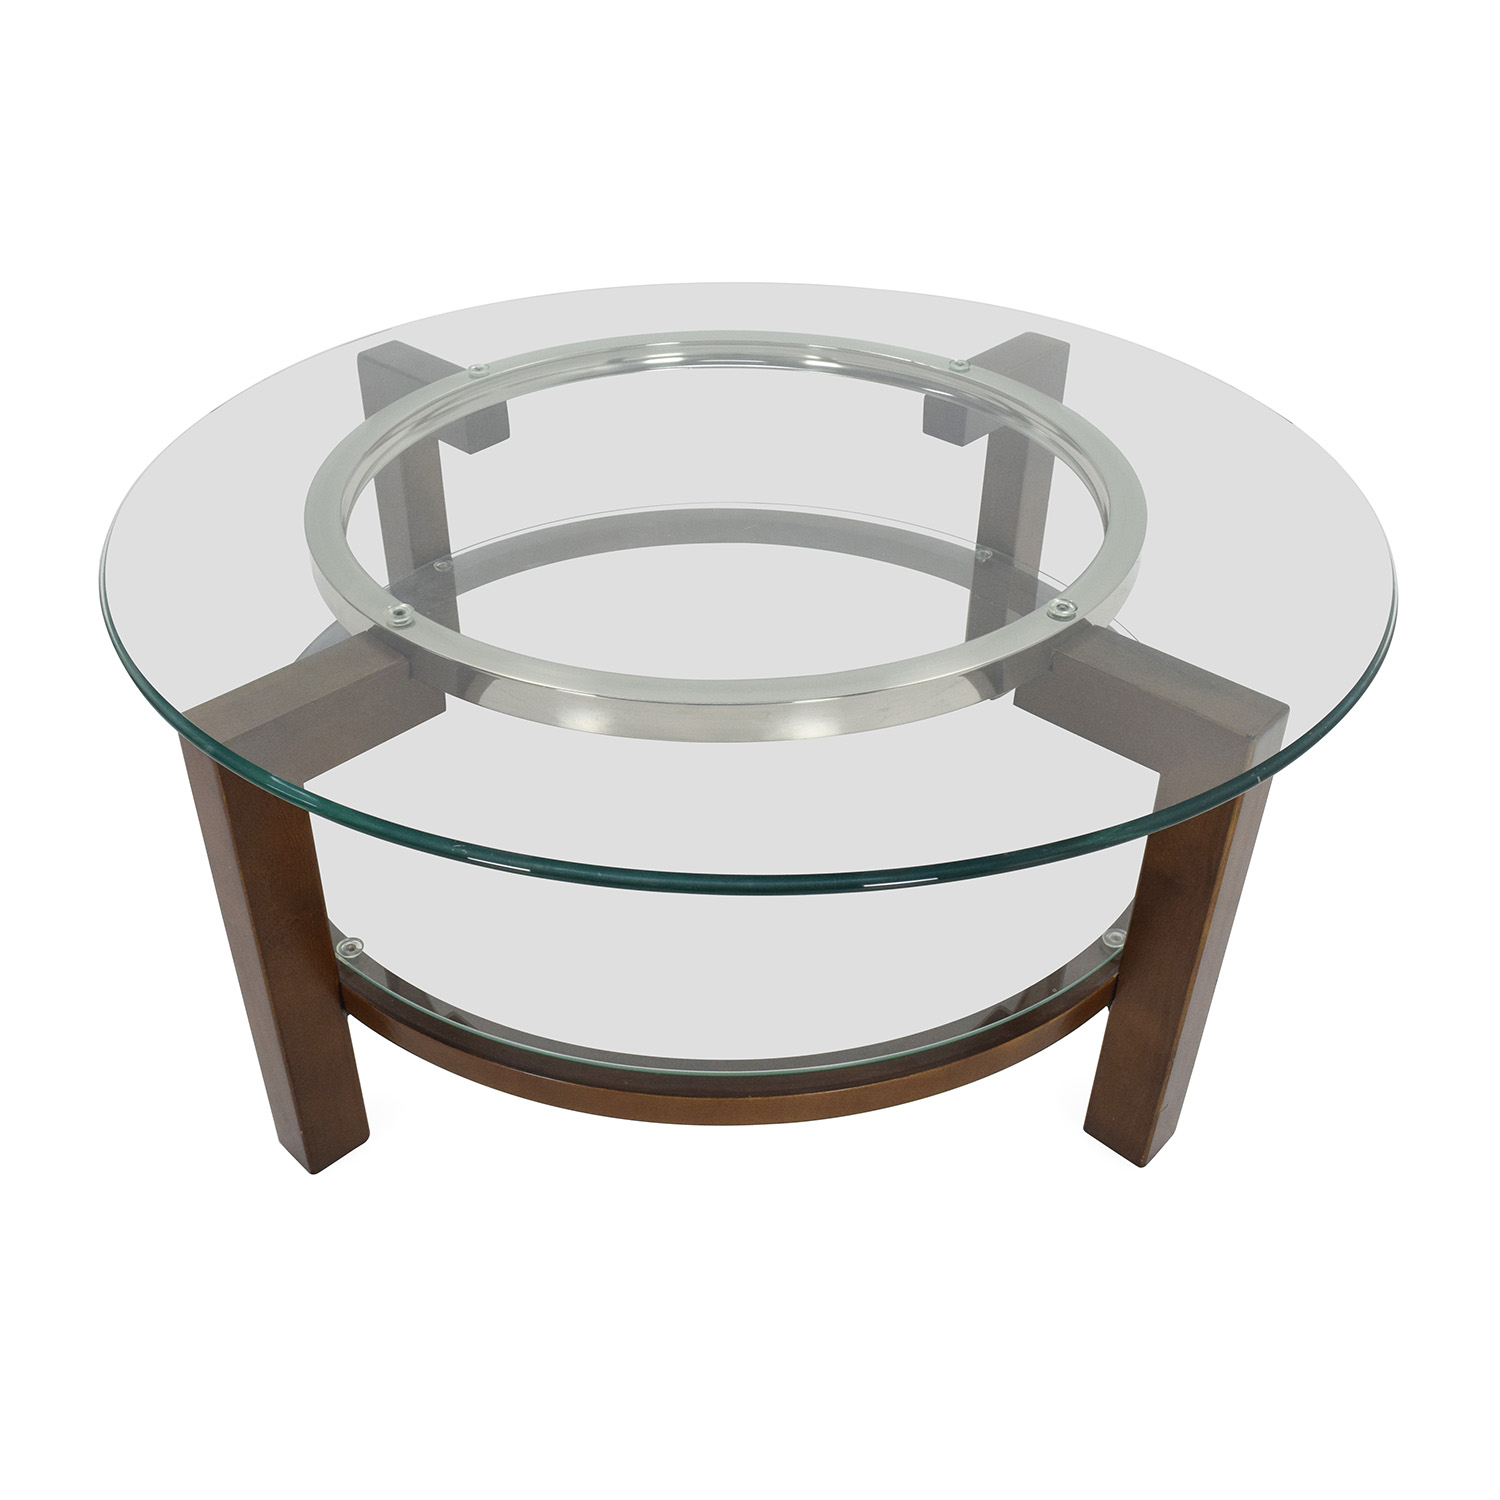 80 Off Cb2 Cb2 Glass Top Coffee Table Tables: coffee tables glass top